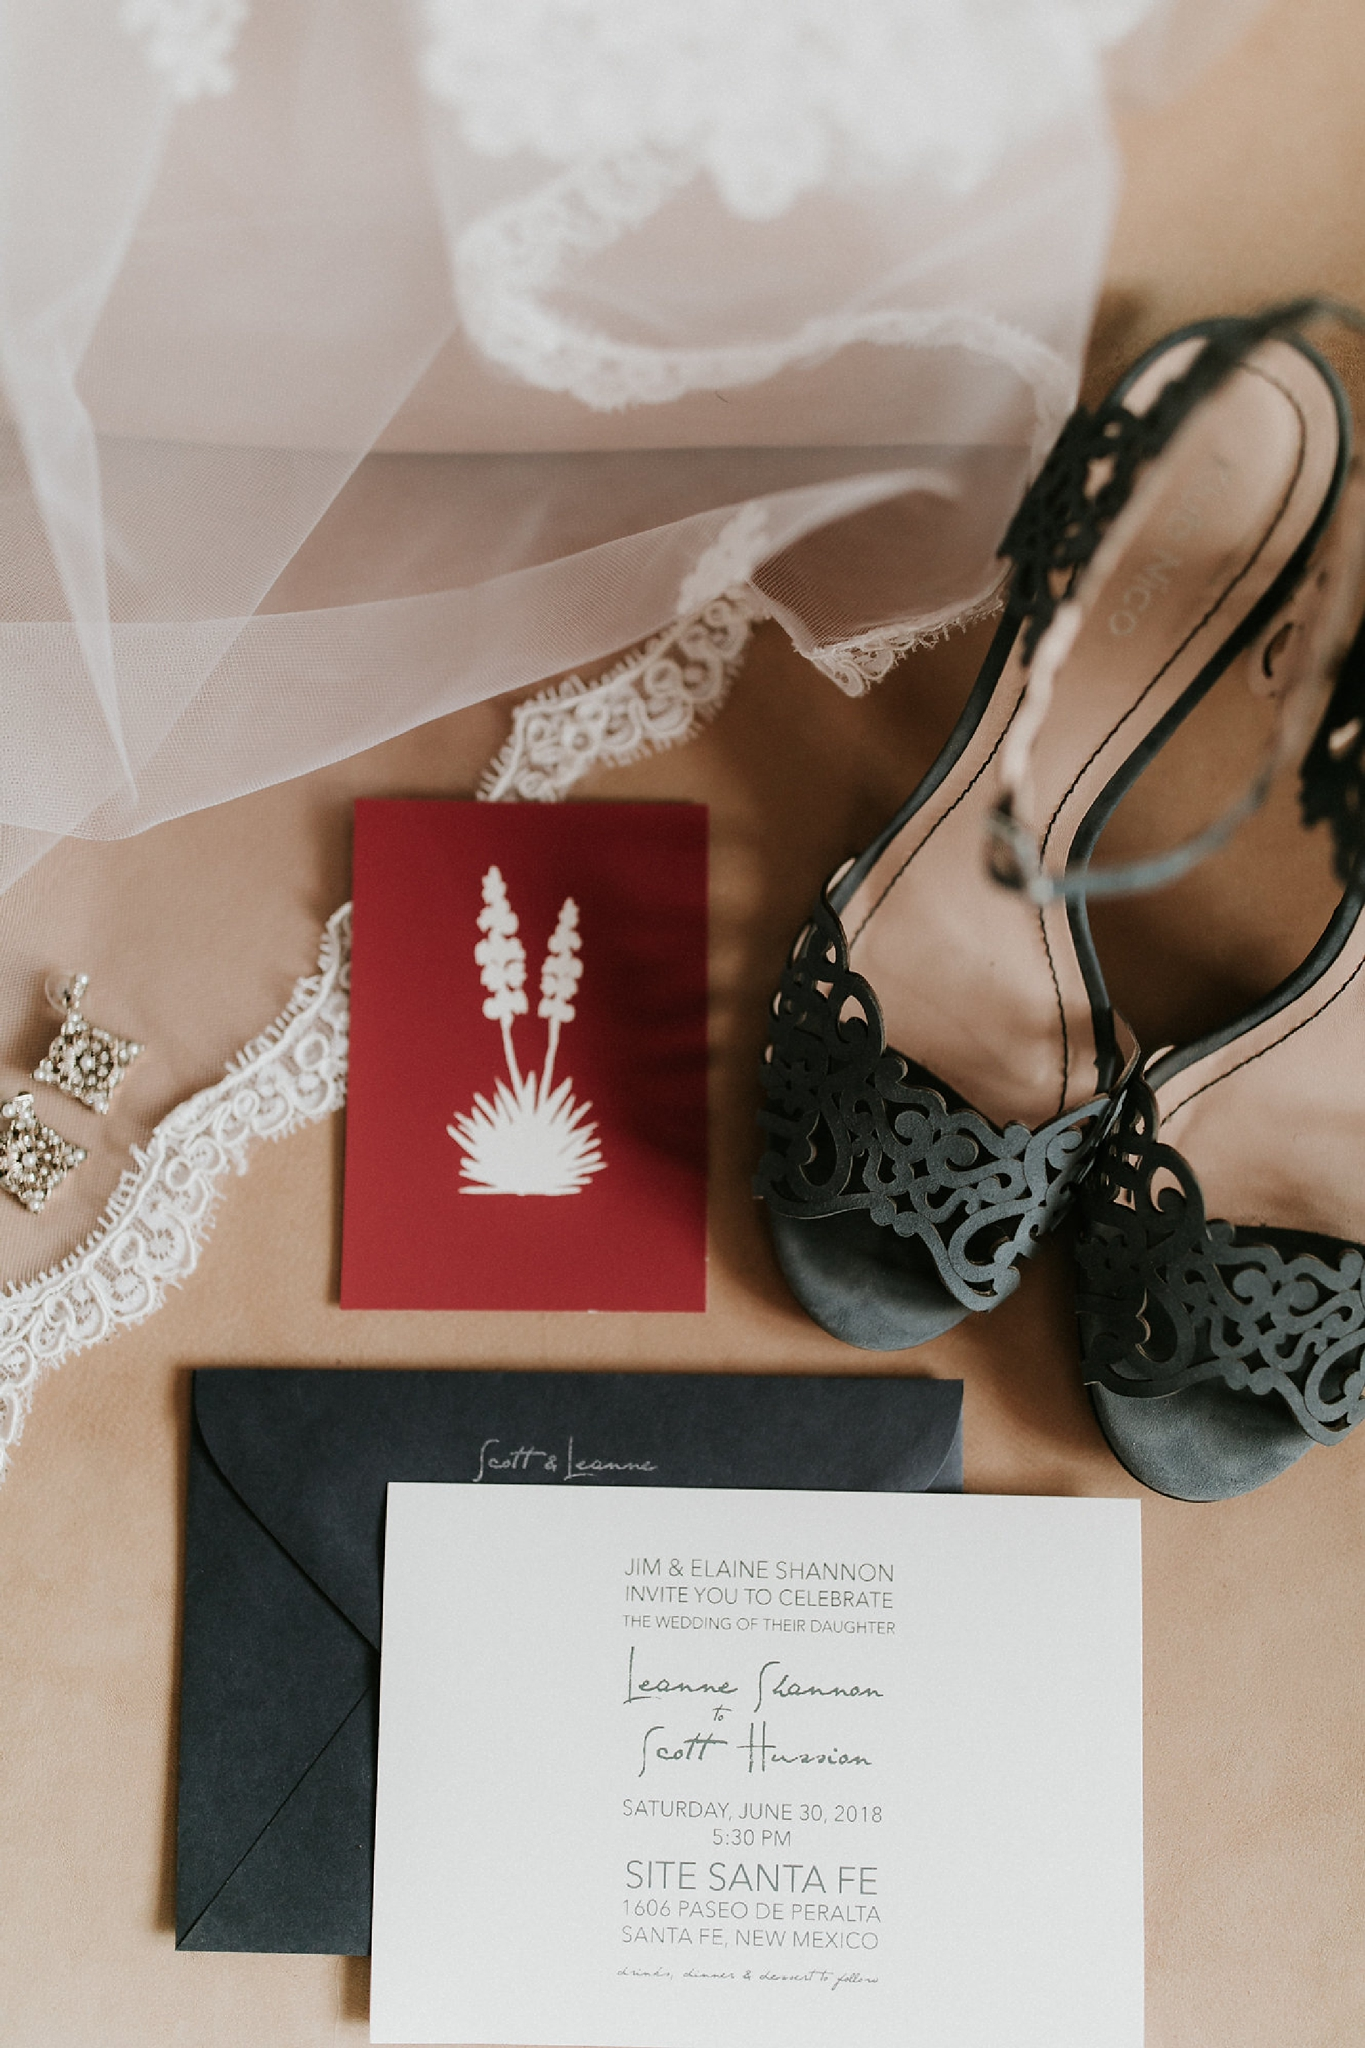 Alicia+lucia+photography+-+albuquerque+wedding+photographer+-+santa+fe+wedding+photography+-+new+mexico+wedding+photographer+-+new+mexico+wedding+-+wedding+invitations+-+invitation+suite+-+wedding+inspo_0004.jpg